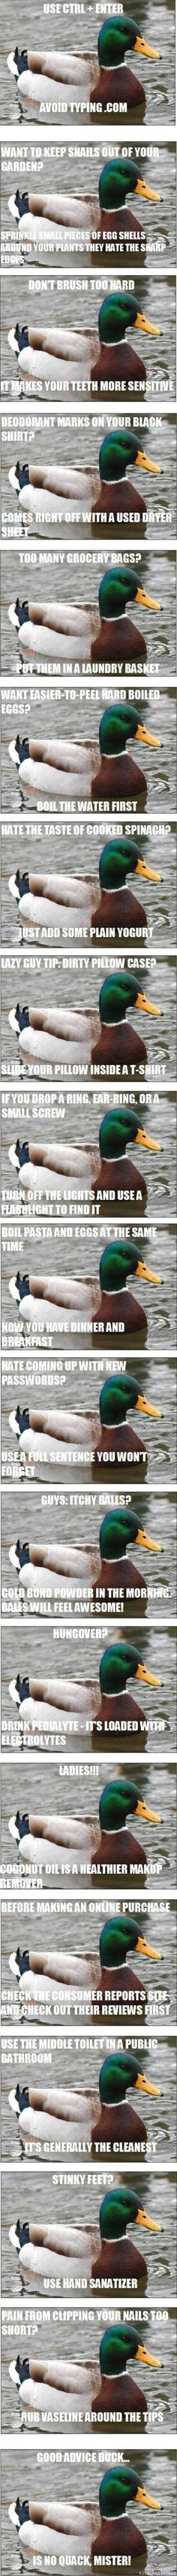 Good advice duck